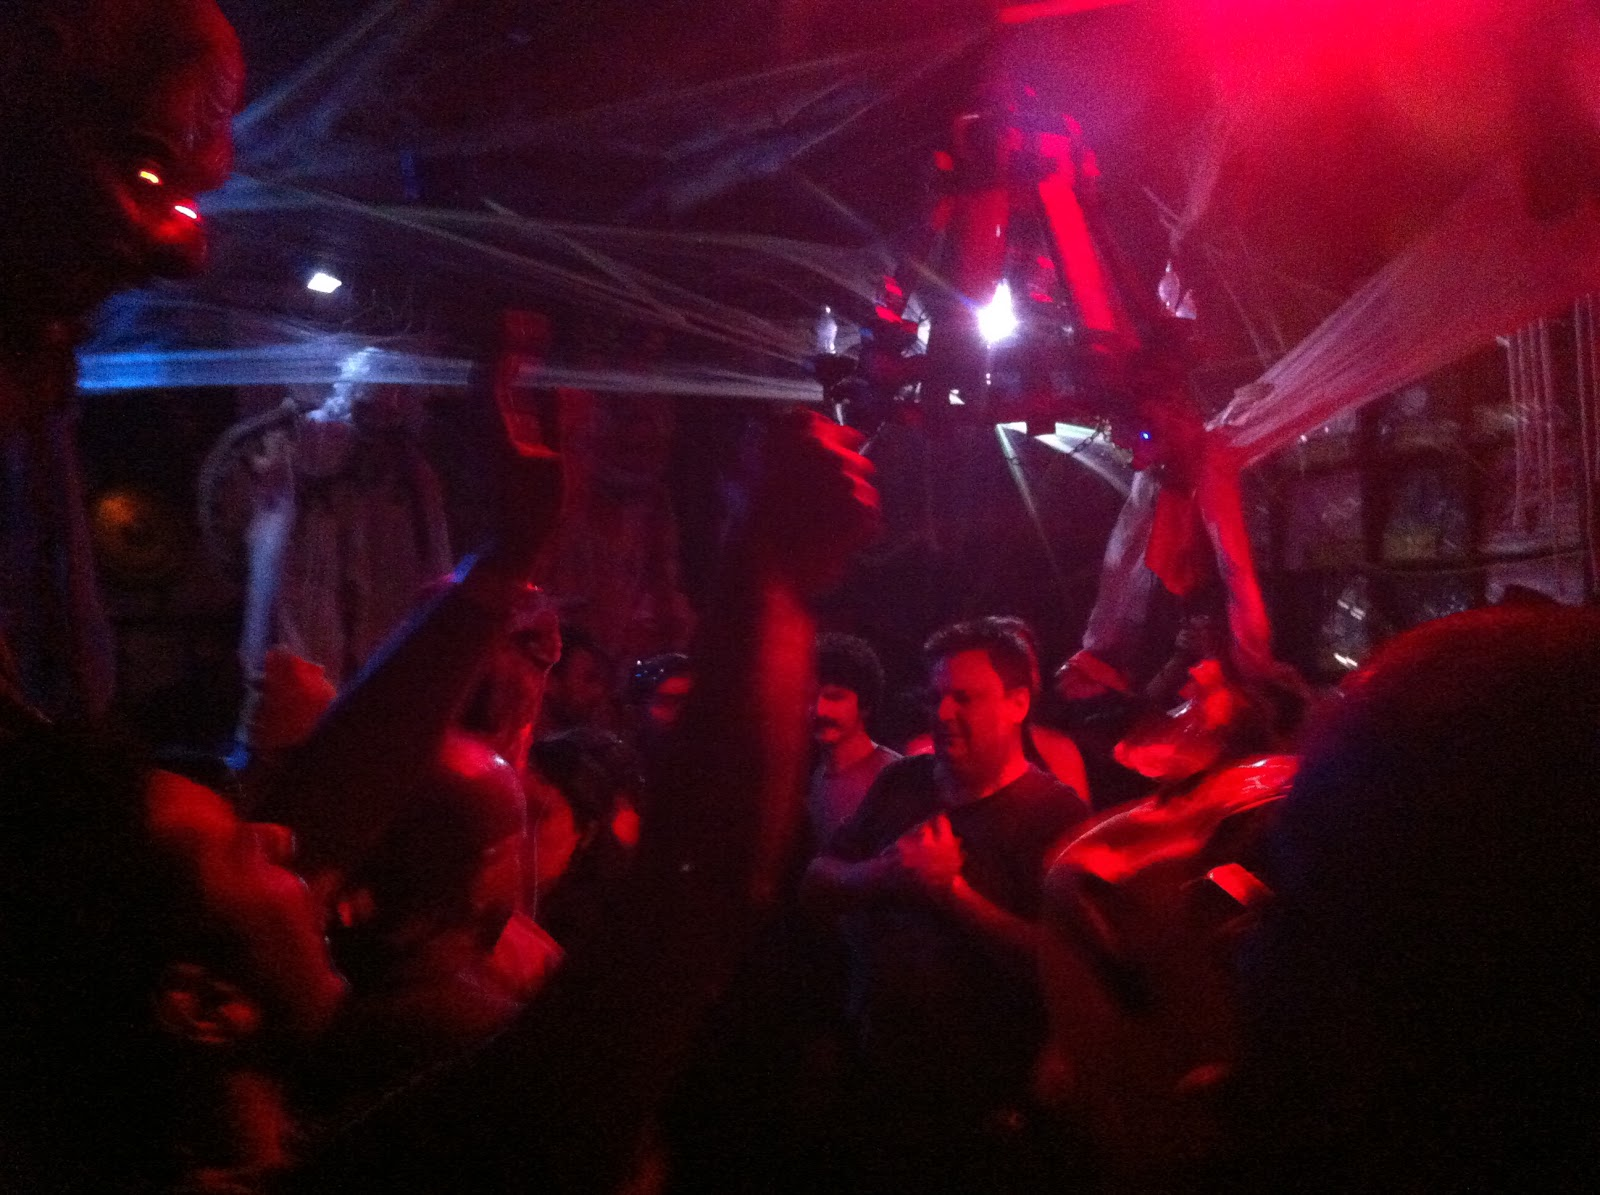 Dope jams halloween ball review fluxes for Classic house grooves dope jams nyc